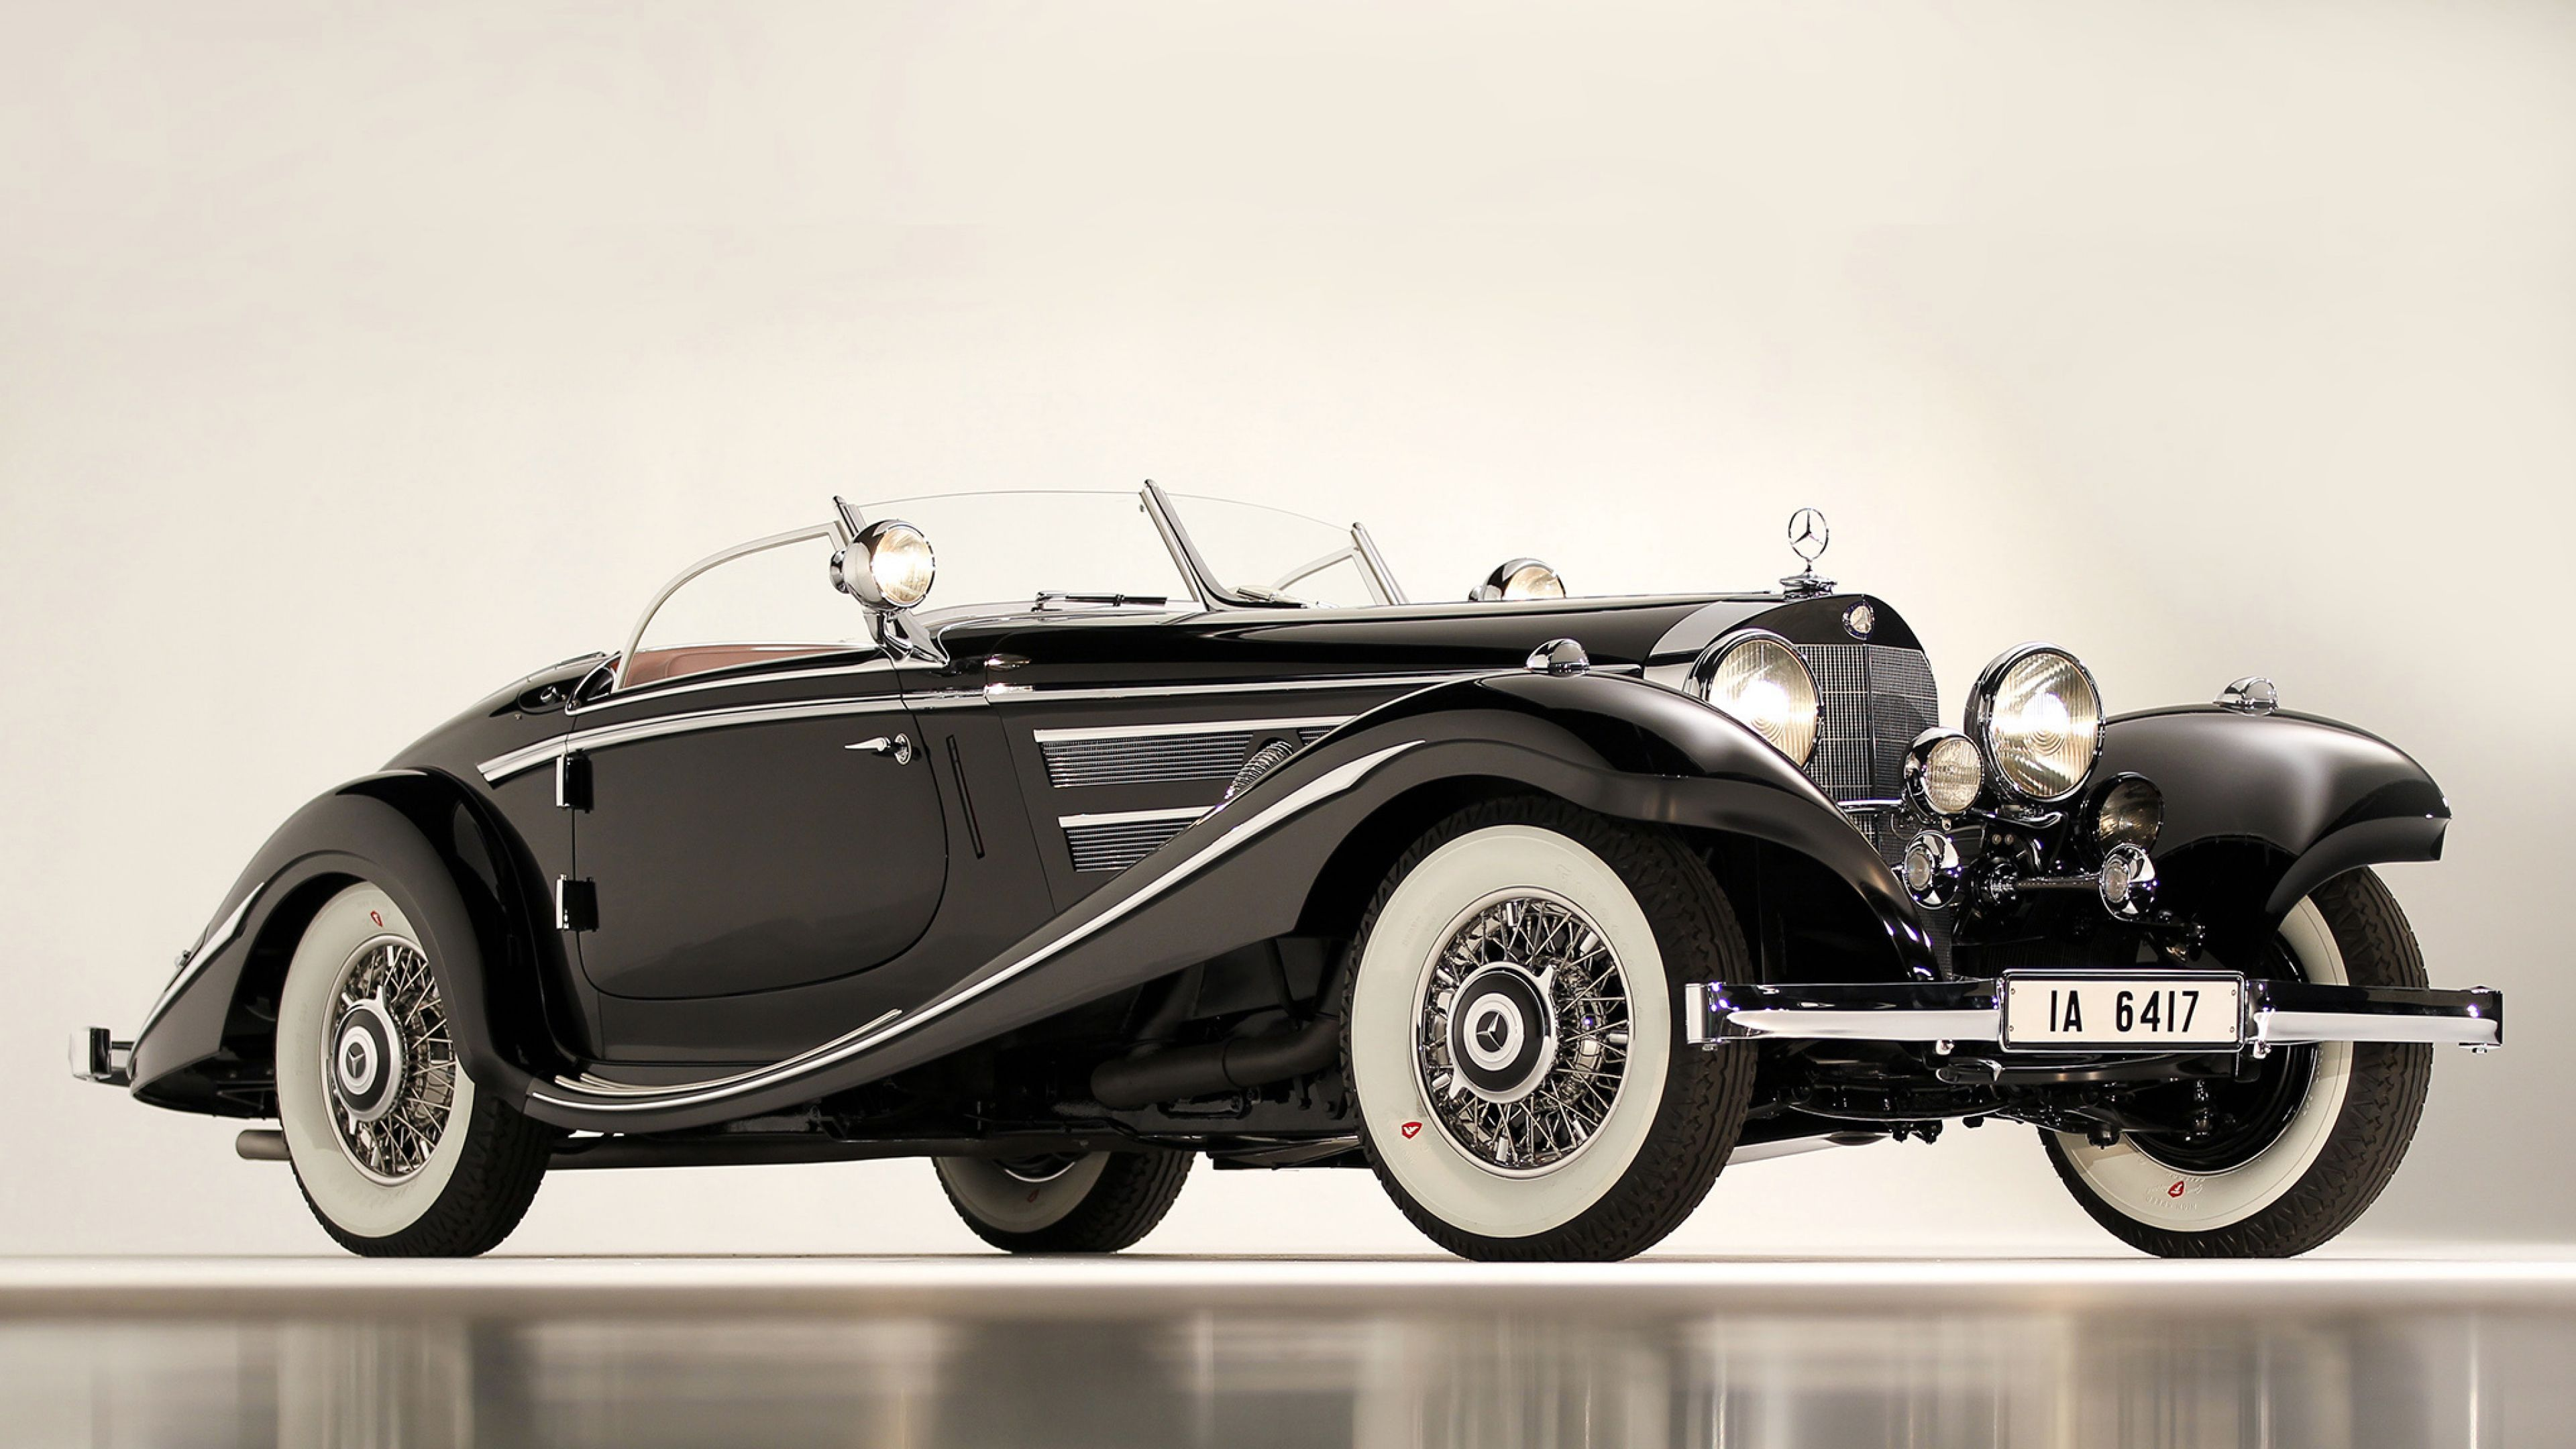 3840x2160 Wallpaper Mercedes 1936 540k Special Roadster Classic